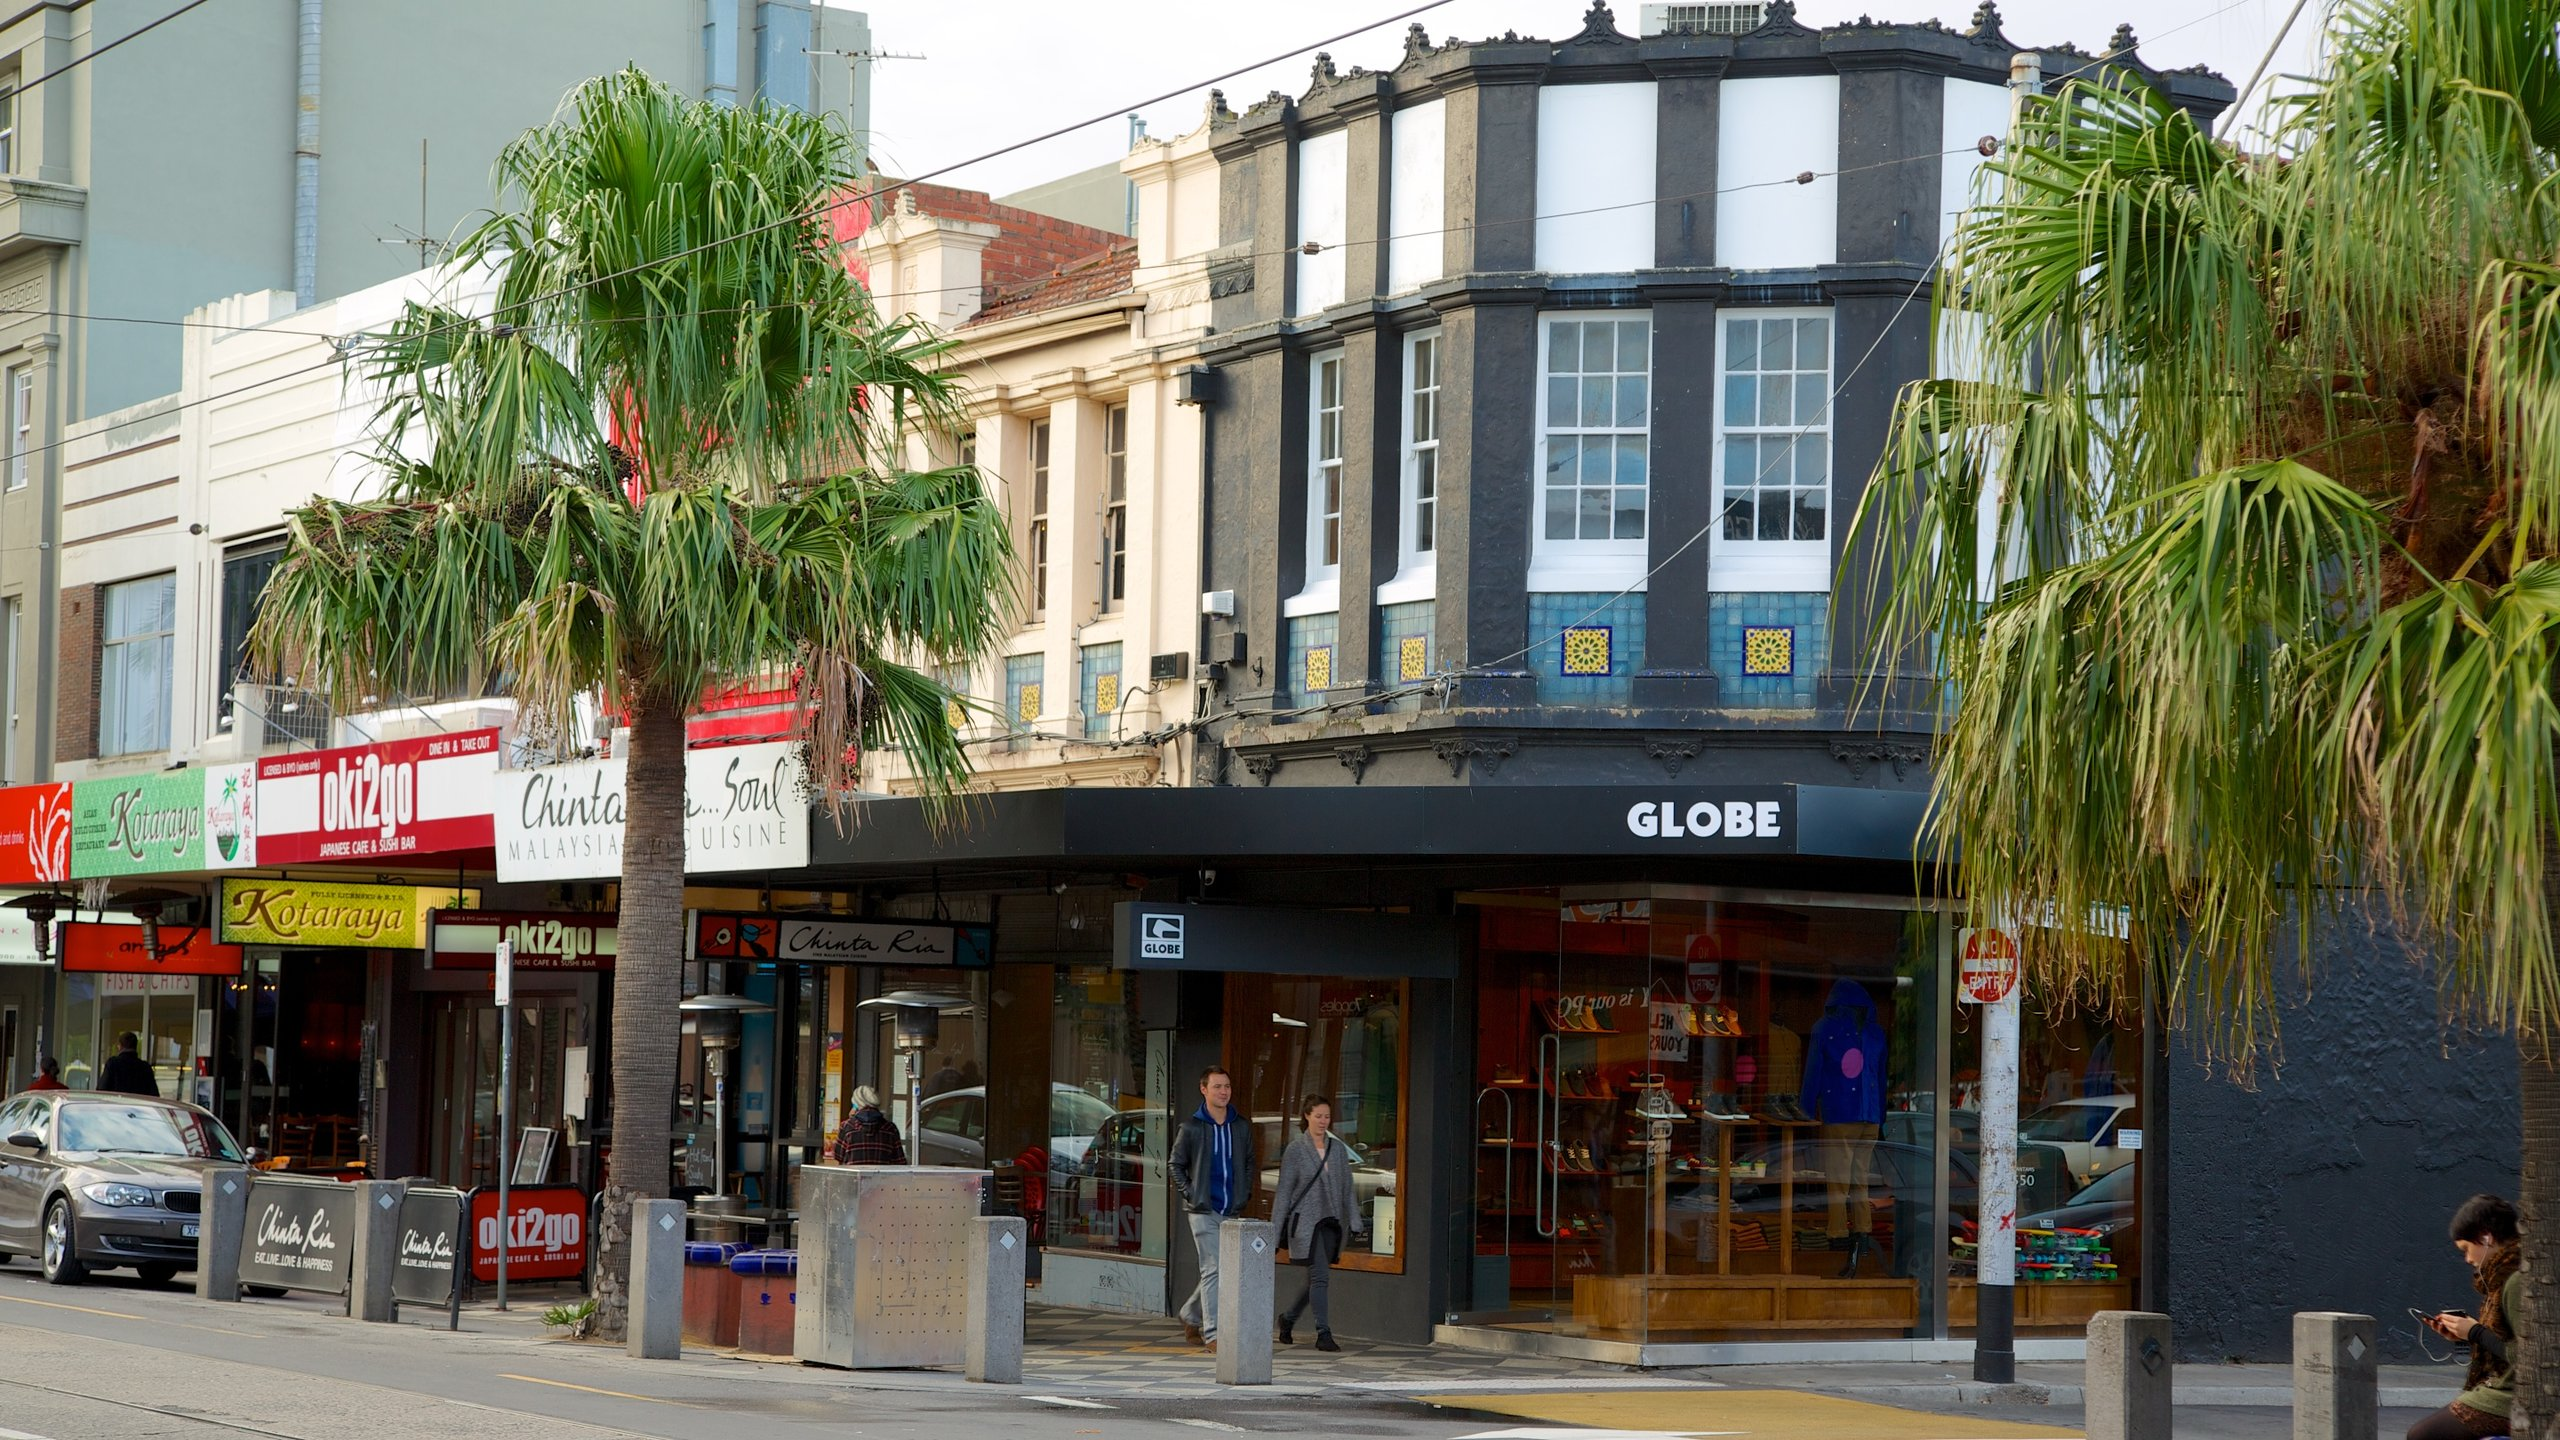 Victoria which includes a city, street scenes and signage